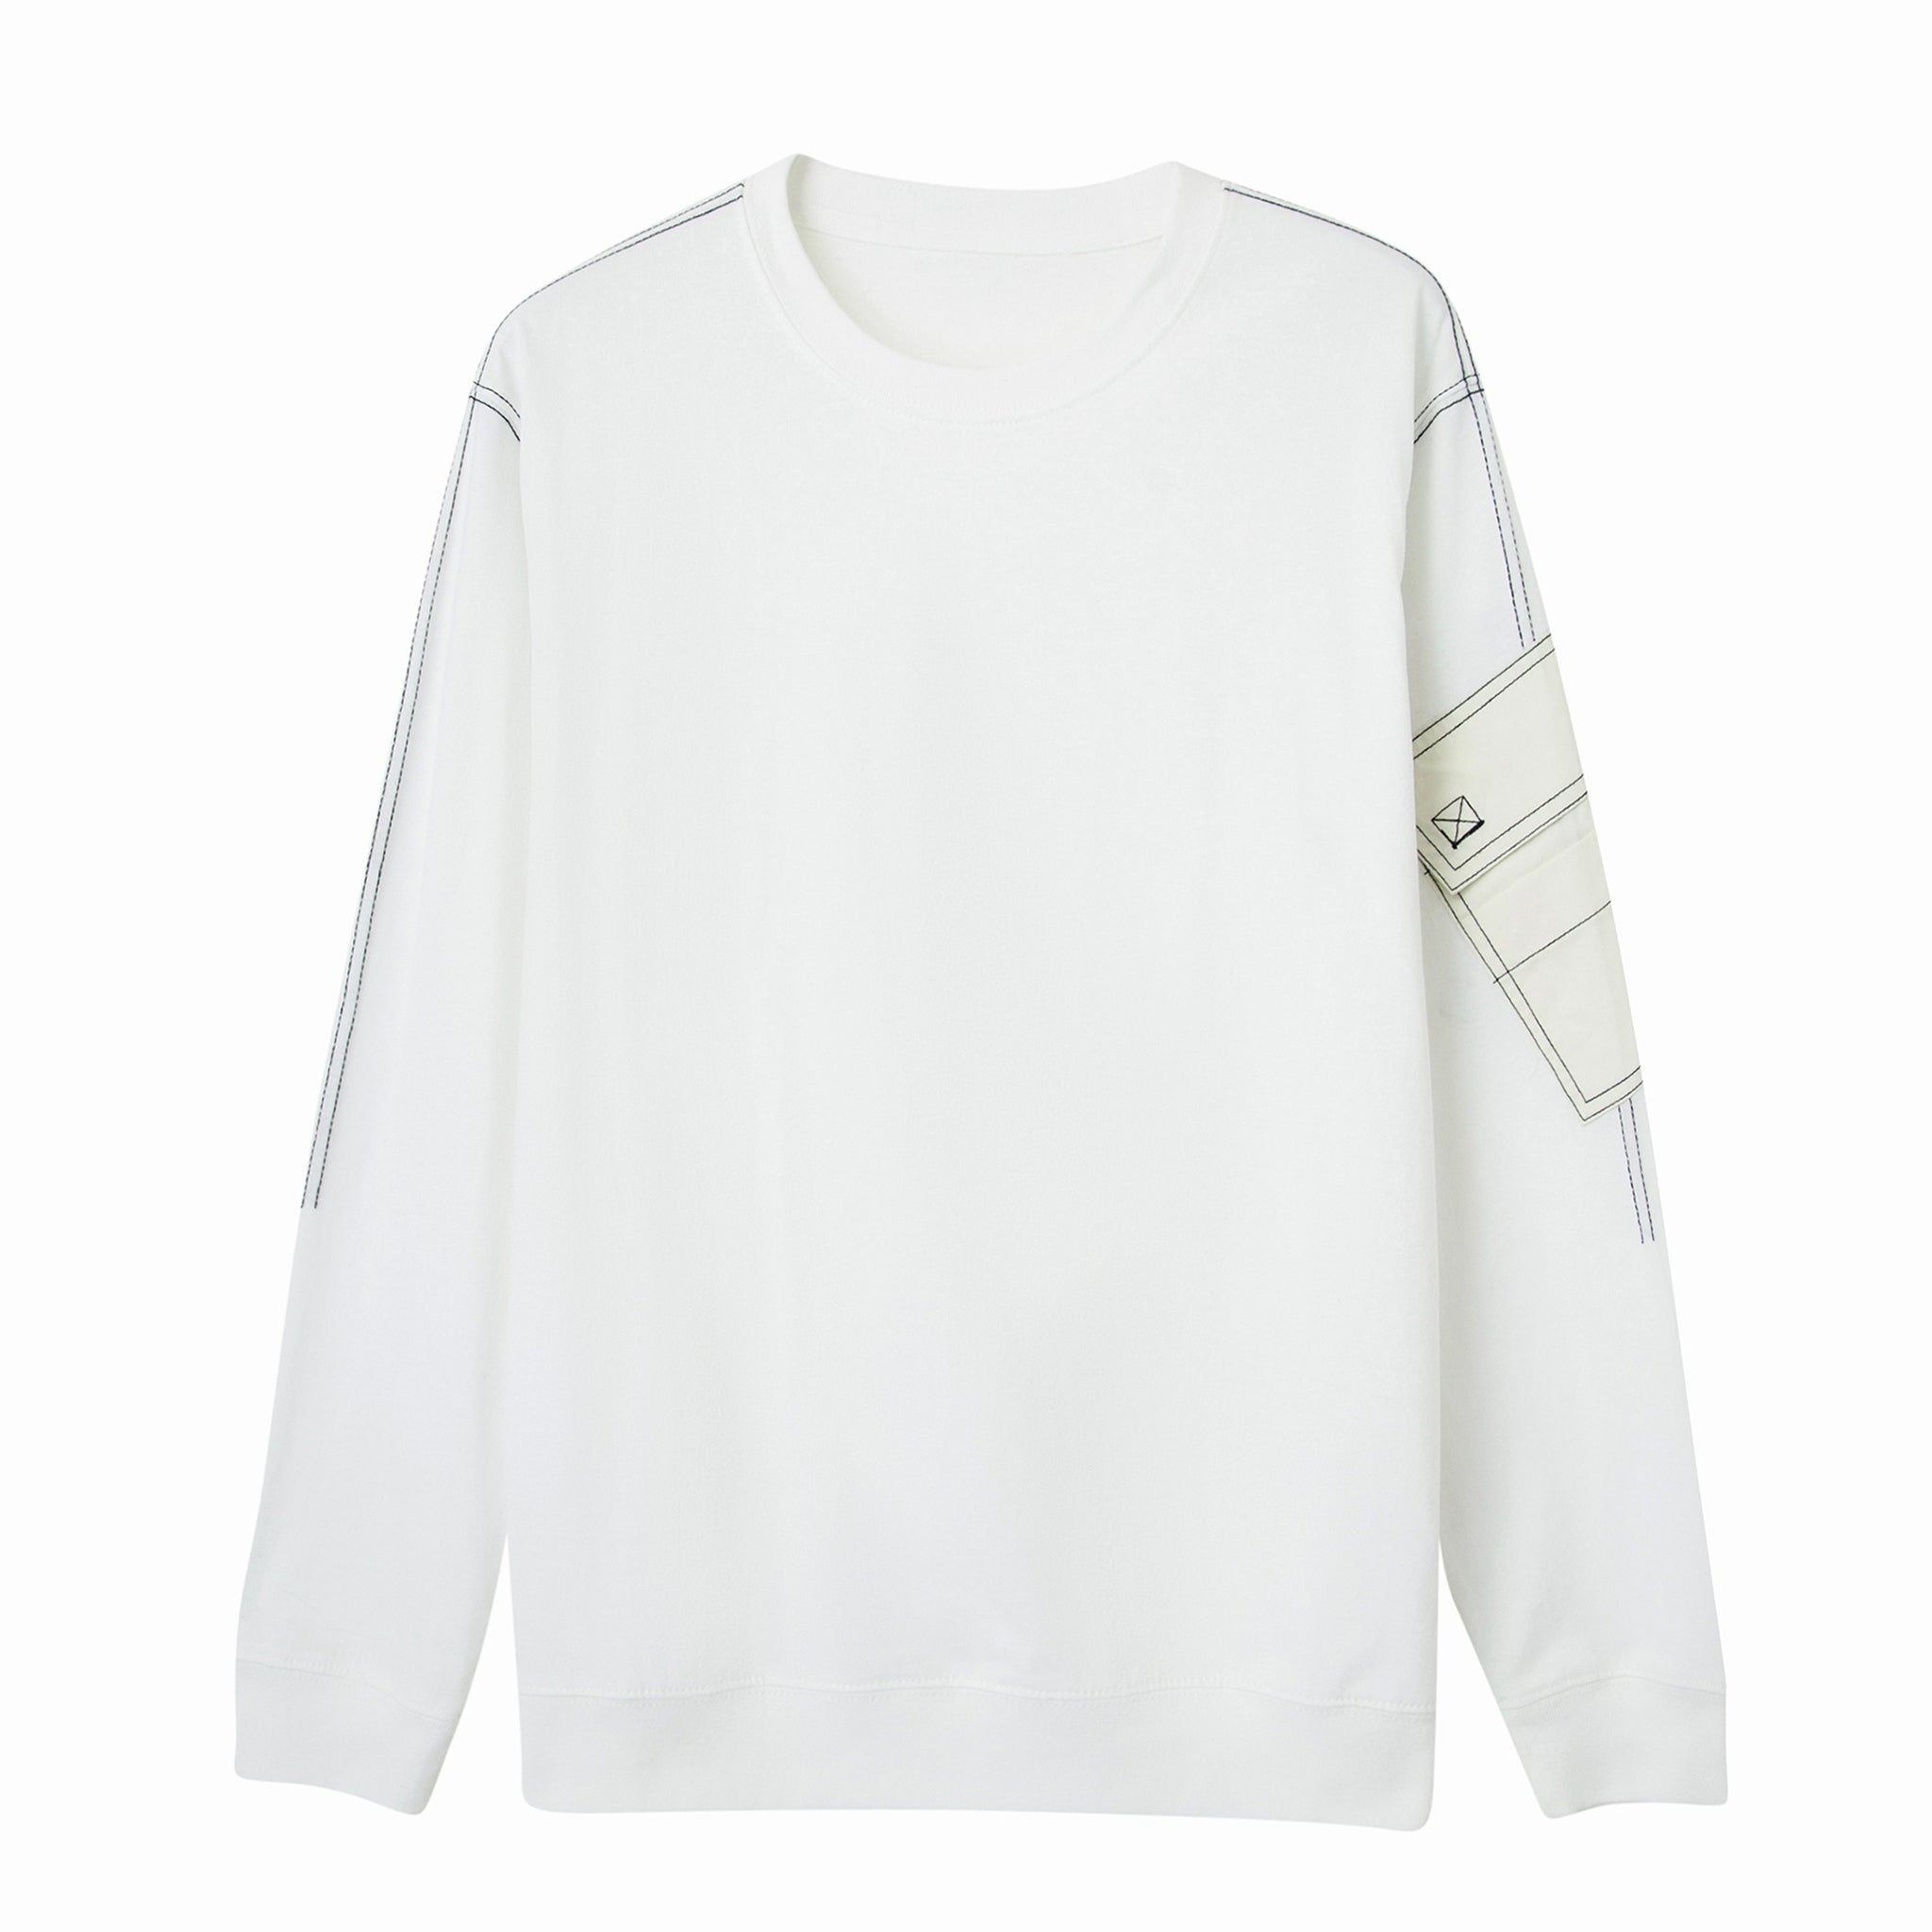 Load image into Gallery viewer, Le Fruit Defendu Pocket Sweatshirt (White)